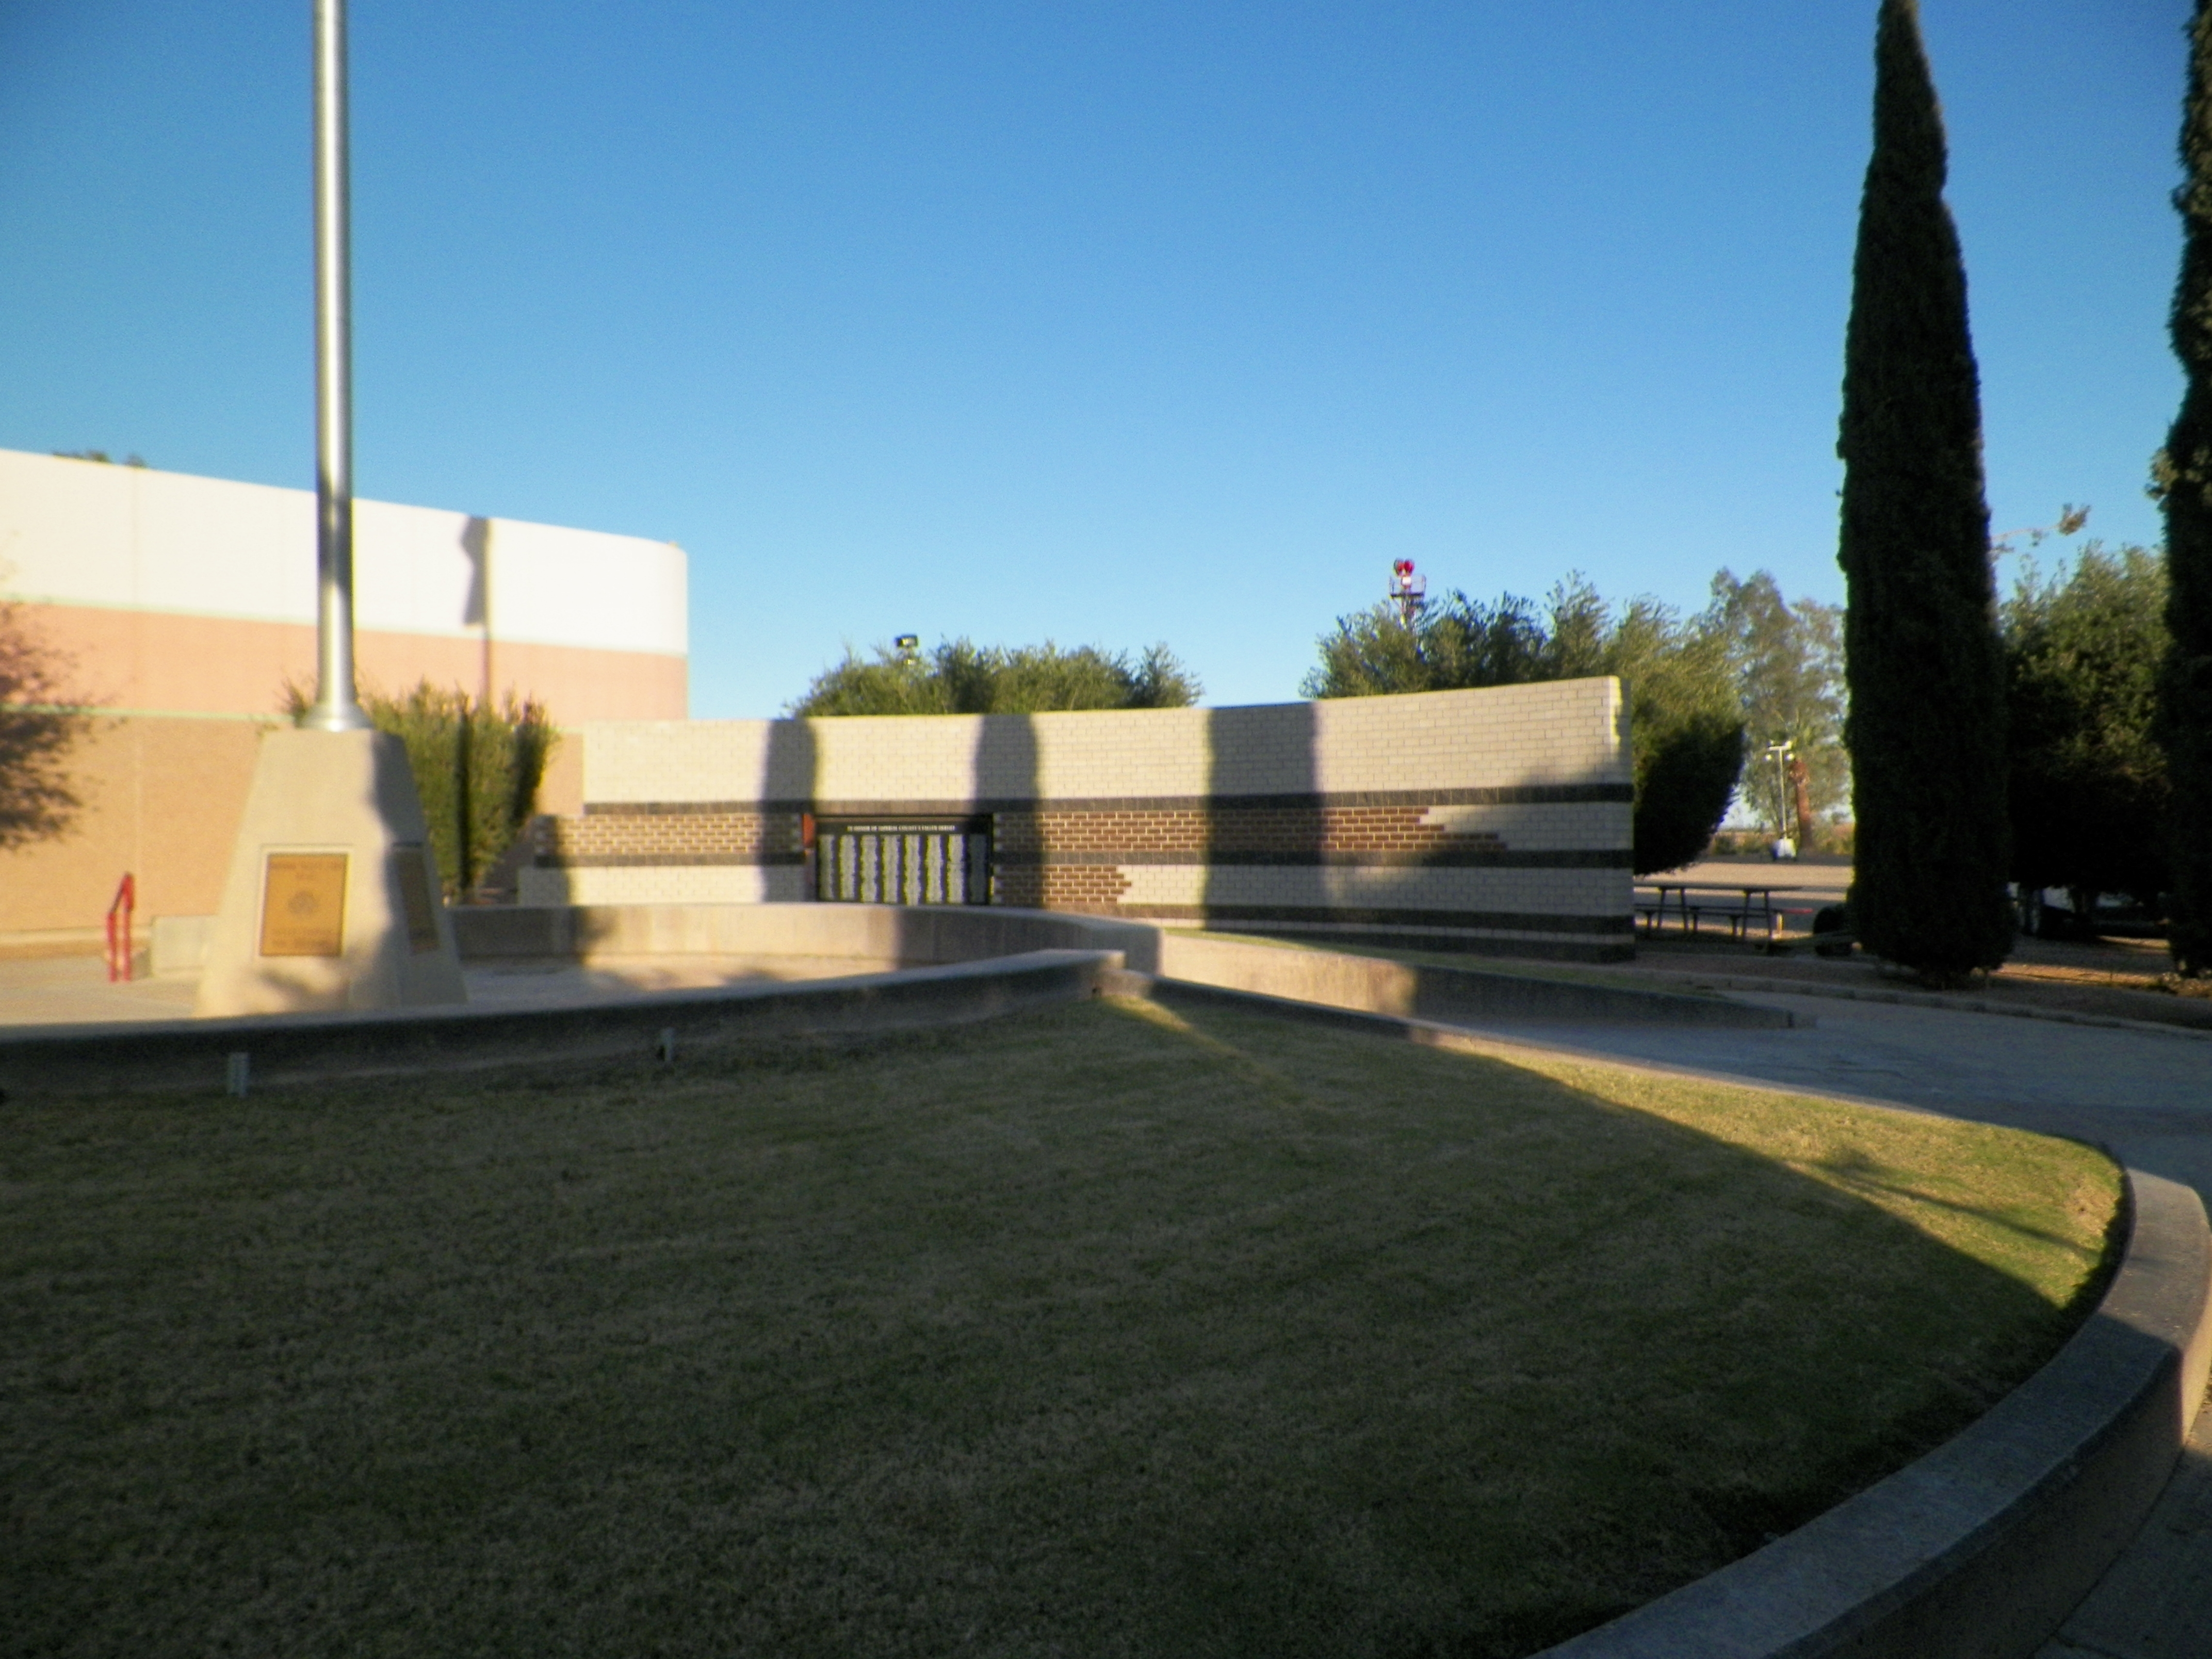 Wide view of the Fallen Heroes Memorial